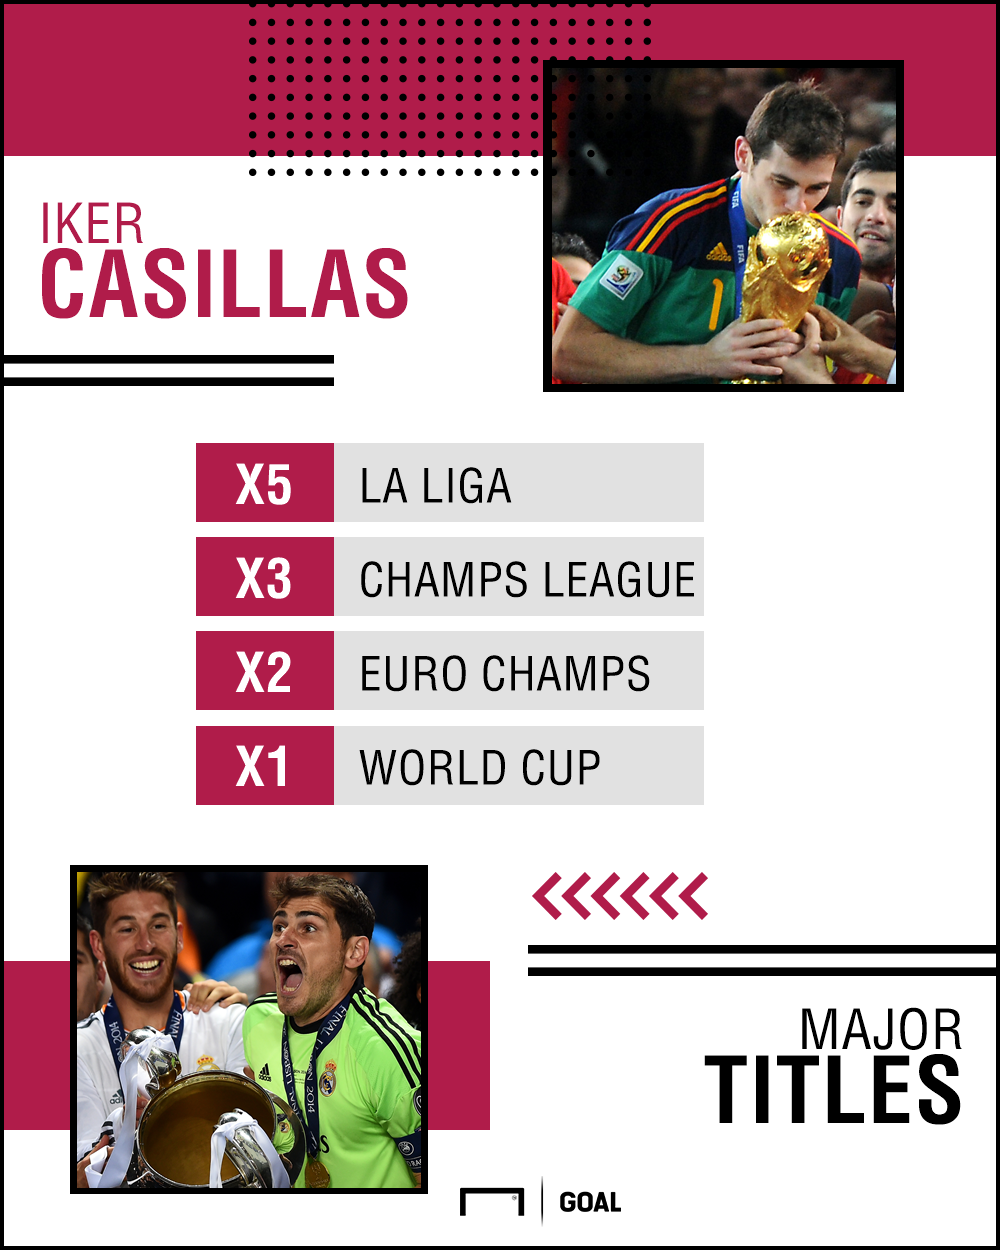 Iker Casillas major titles